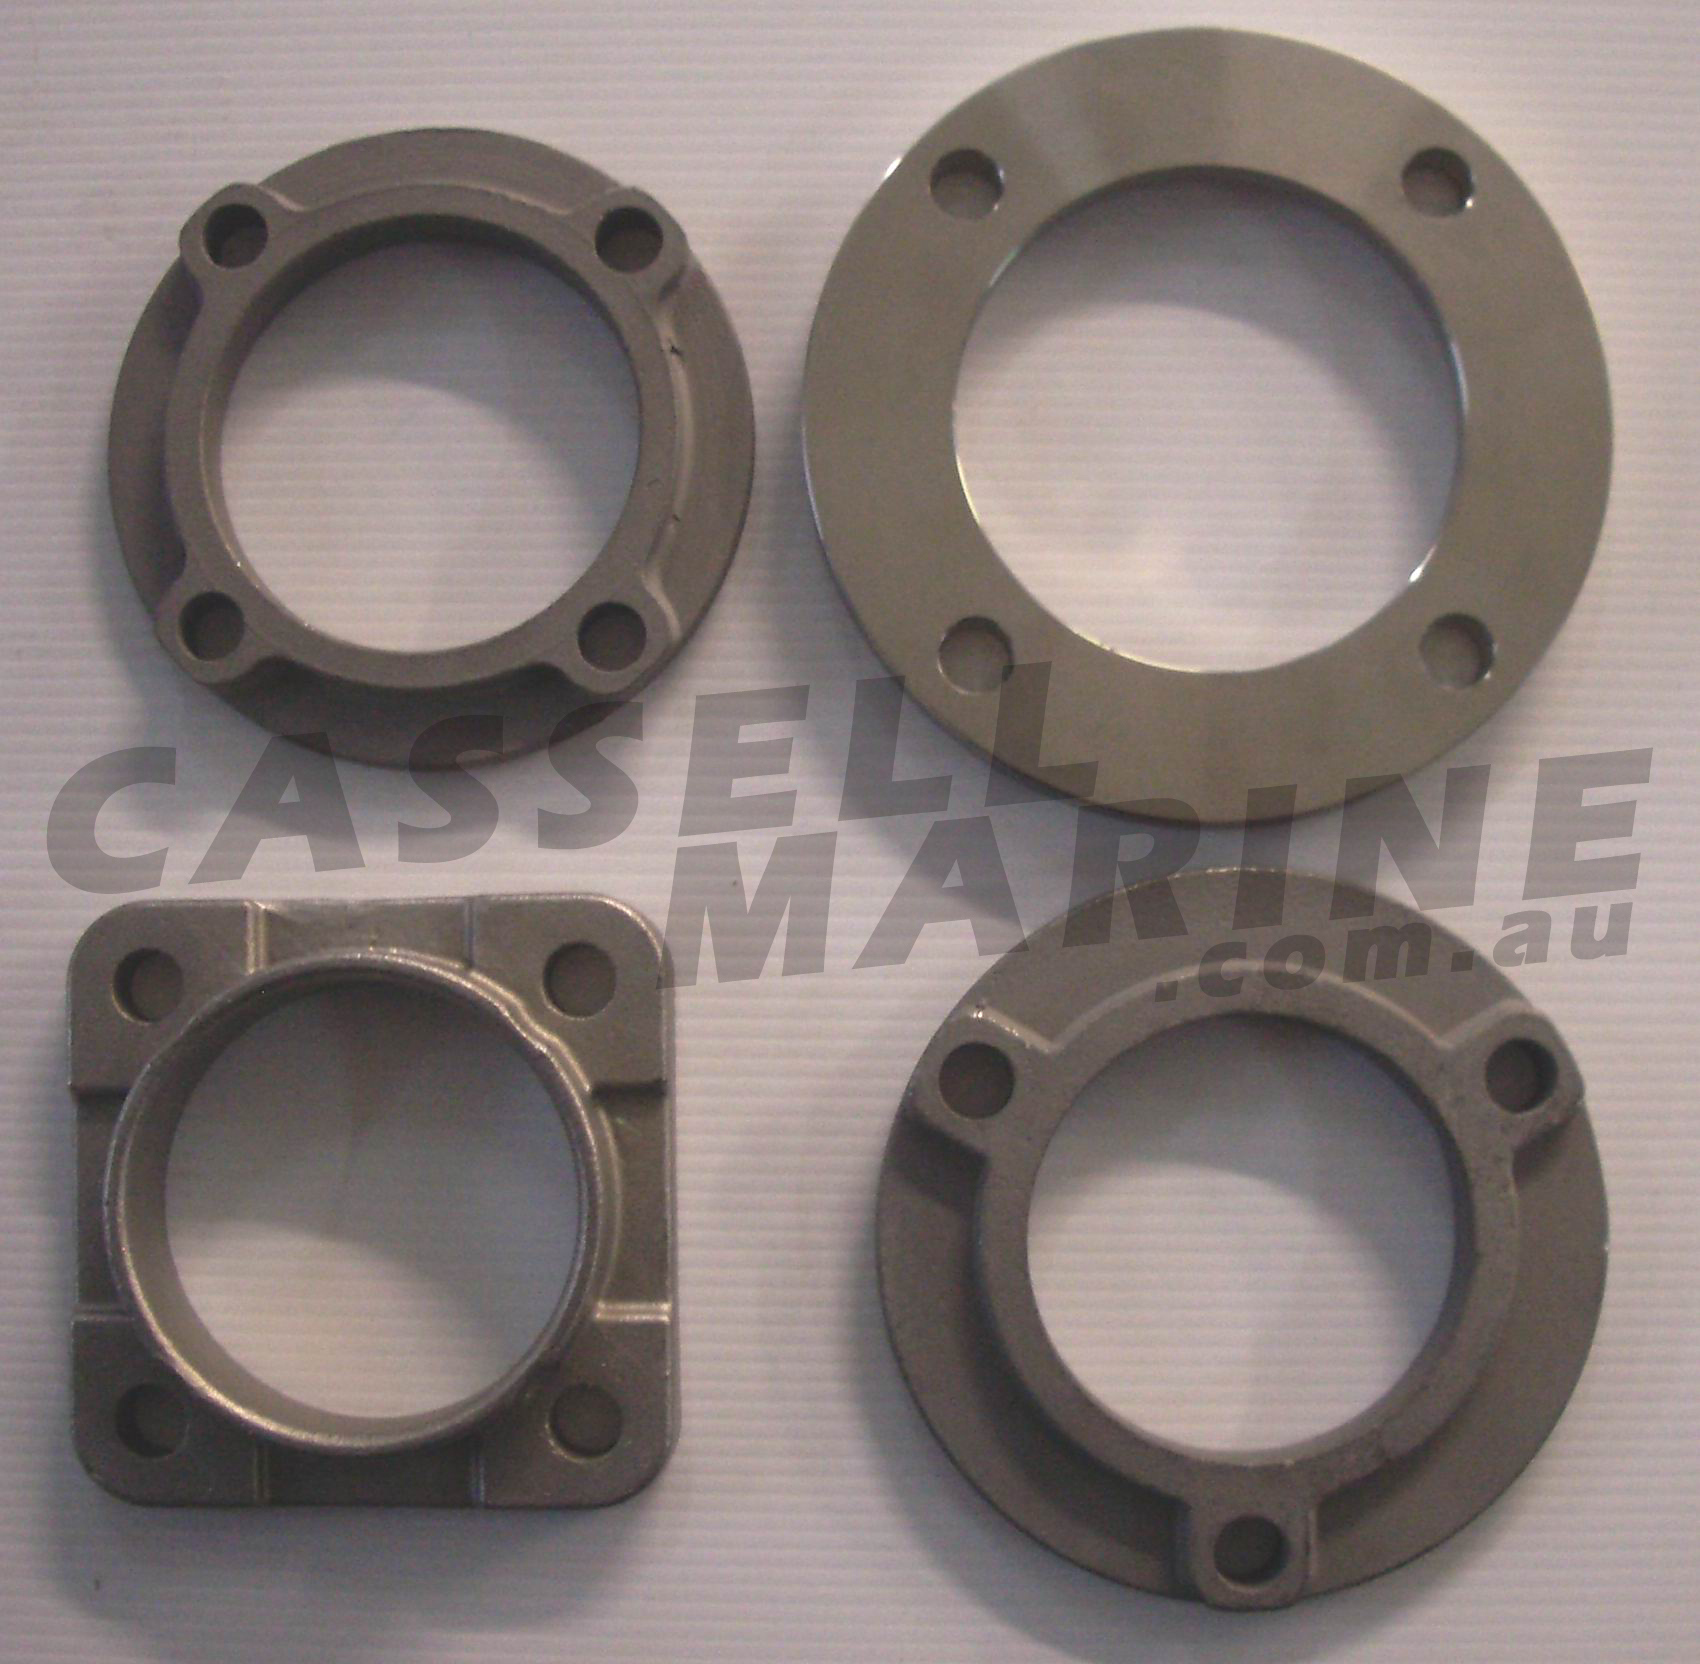 Exhaust flange suit water cooled manifold flanges